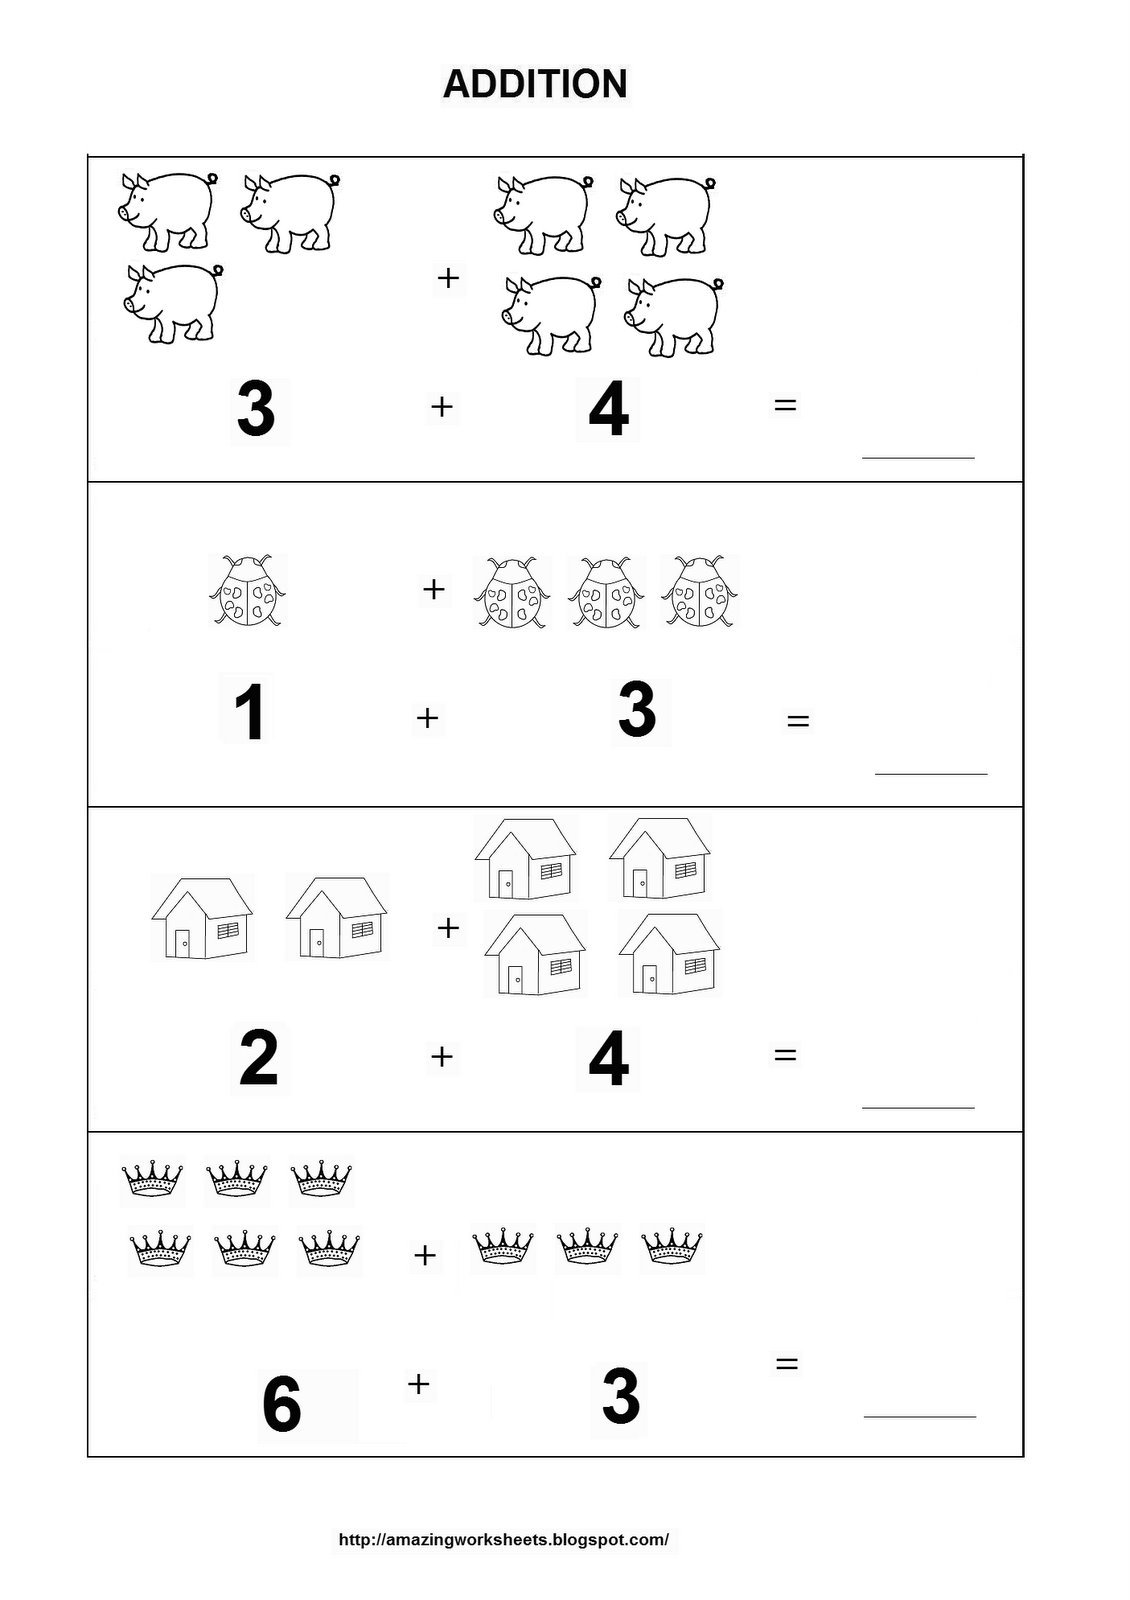 Lovely Addition Math Worksheets For Pages Kids House Decor Ideas